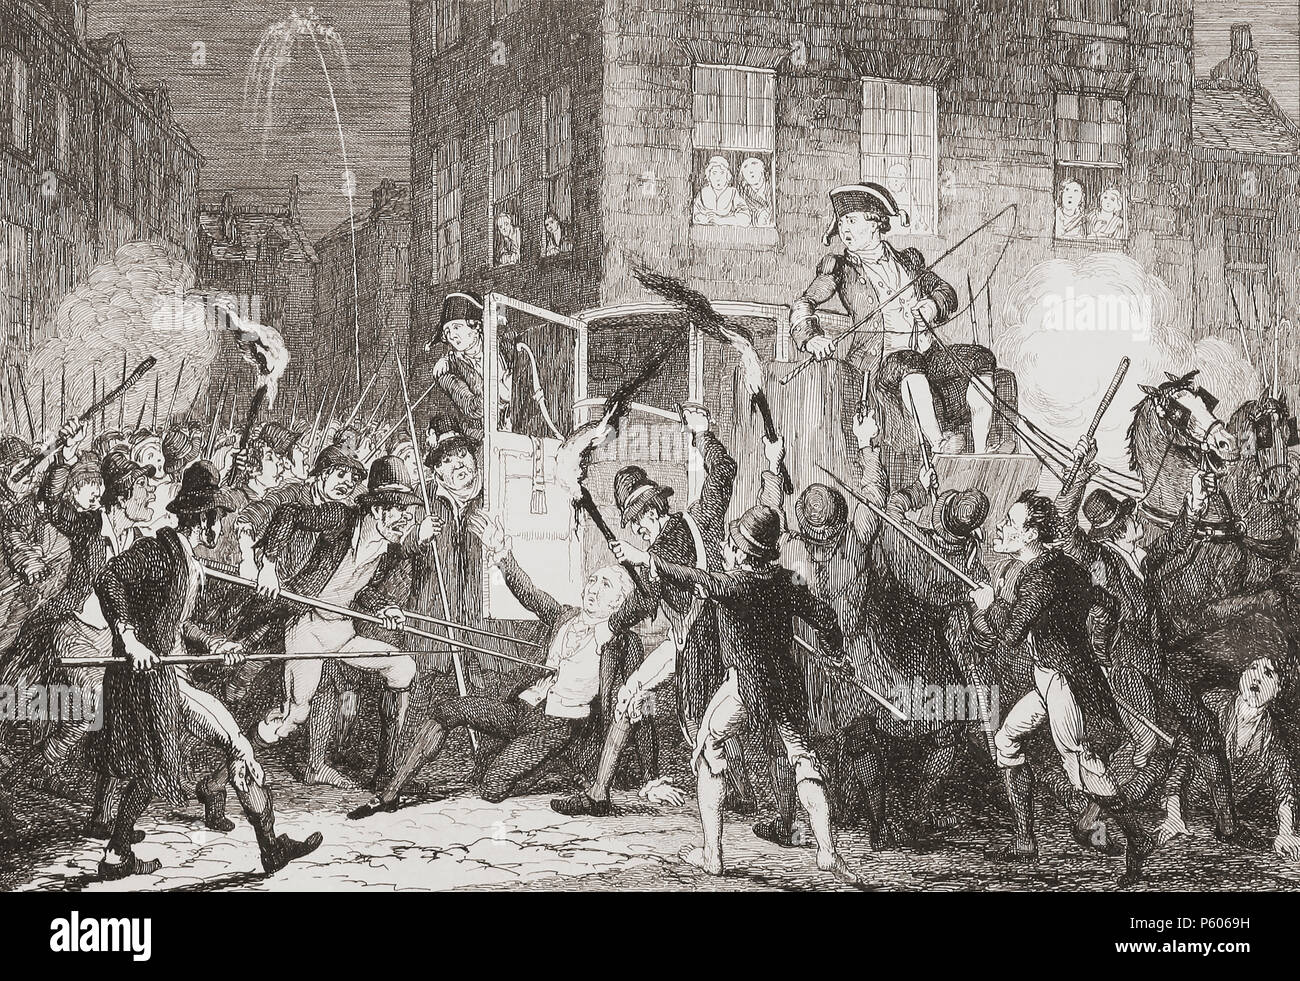 """Murder of Lord Kilwarden"". Illustration by George Cruikshank. Arthur Wolfe, 1st Viscount Kilwarden, 1739-1803. Irish peer, politician and judge.  Lord Chief Justice of Ireland.  He and his nephew were murdered on the streets of Dublin by Robert Emmet's rebels on the night of July 23, 1803 during the Irish Rebellion of 1803.  From History of the Irish Rebellion in 1798; with Memoirs of the Union, and Emmett's Insurrection in 1803 by W.H. Maxwell. Published in London 1854. - Stock Image"